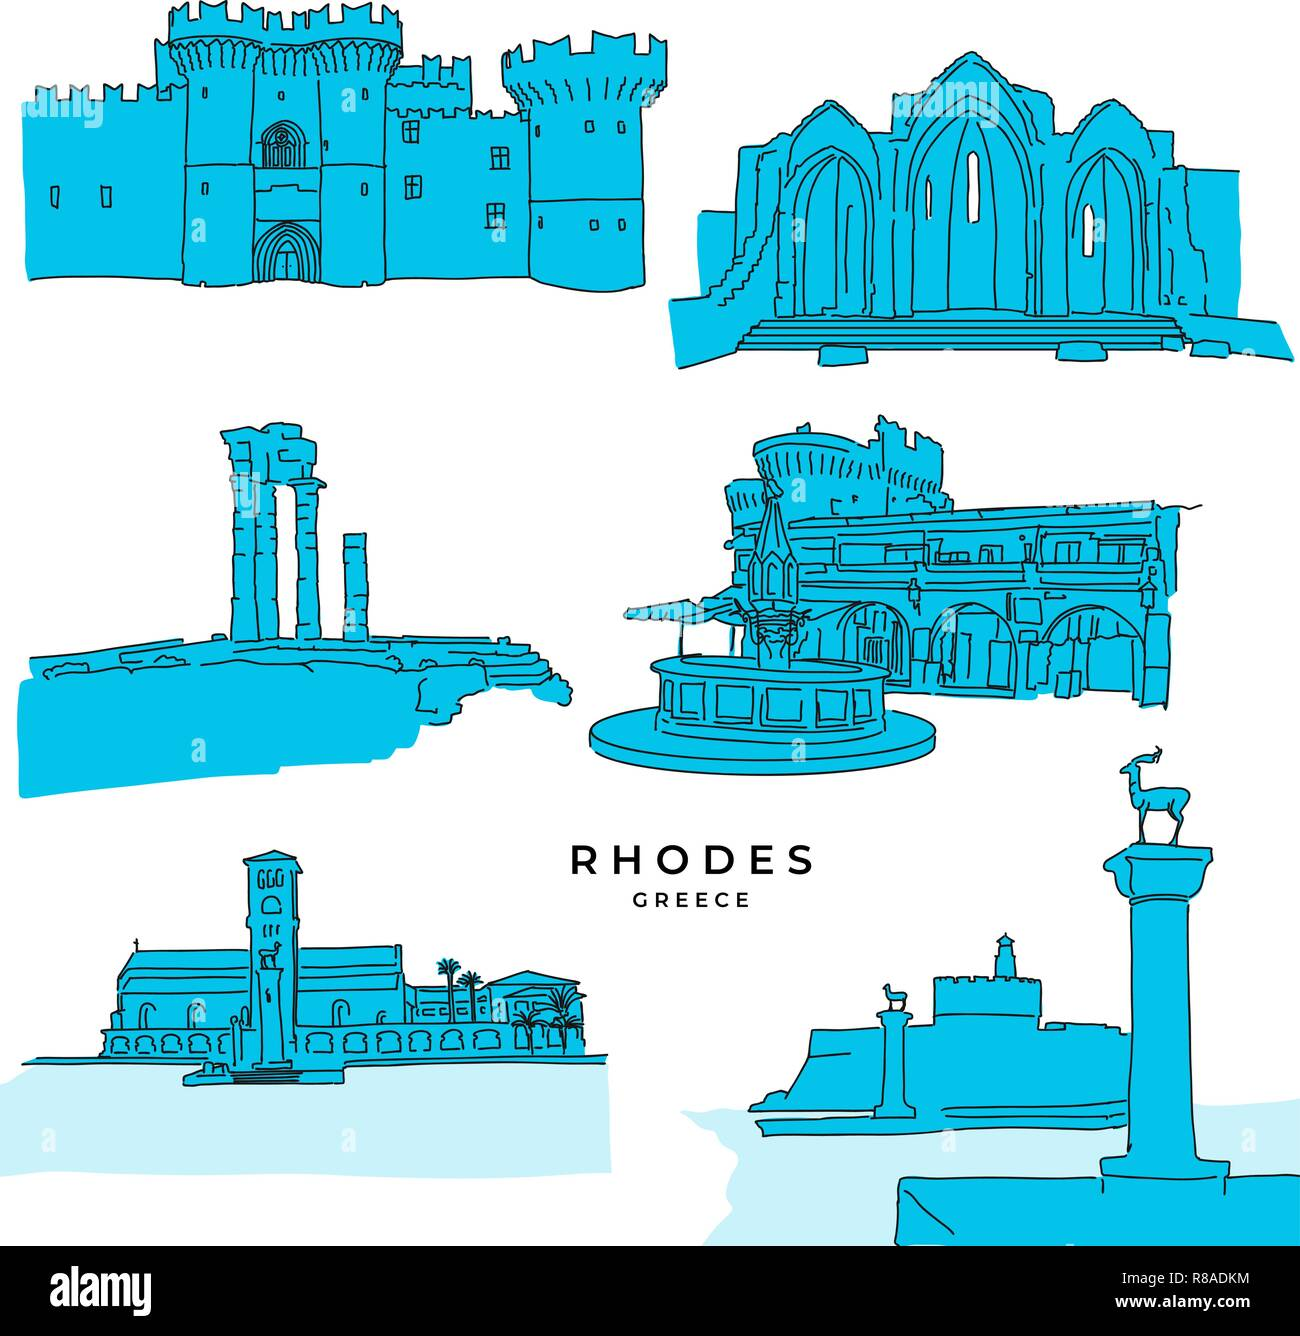 Rhodes Greece landmarks drawings filled. Hand-drawn vector illustration. Famous travel destinations series. - Stock Vector